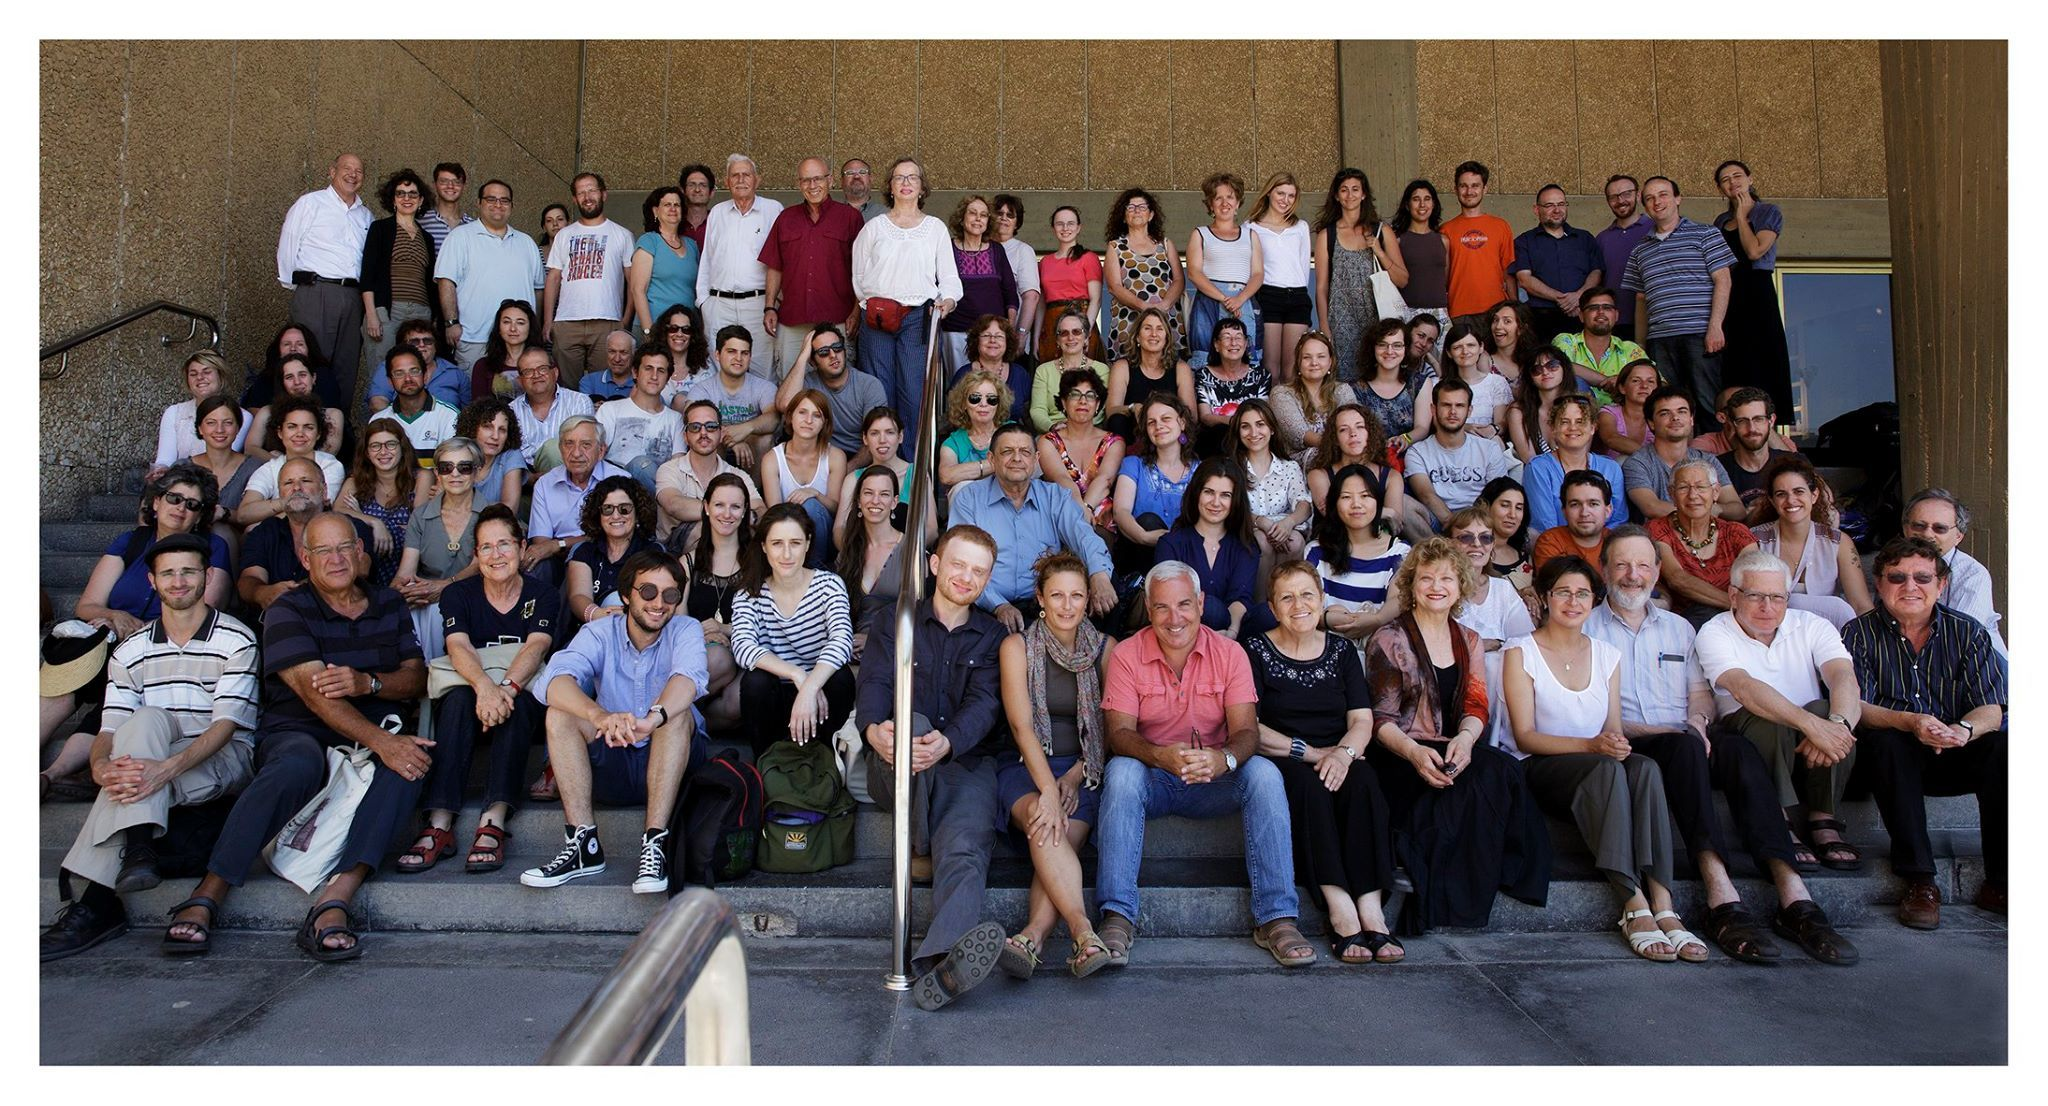 <p>Naomi Prawar Kadar International Yiddish Summer Program at Tel Aviv University (Tel Aviv,&nbsp;2017)</p>